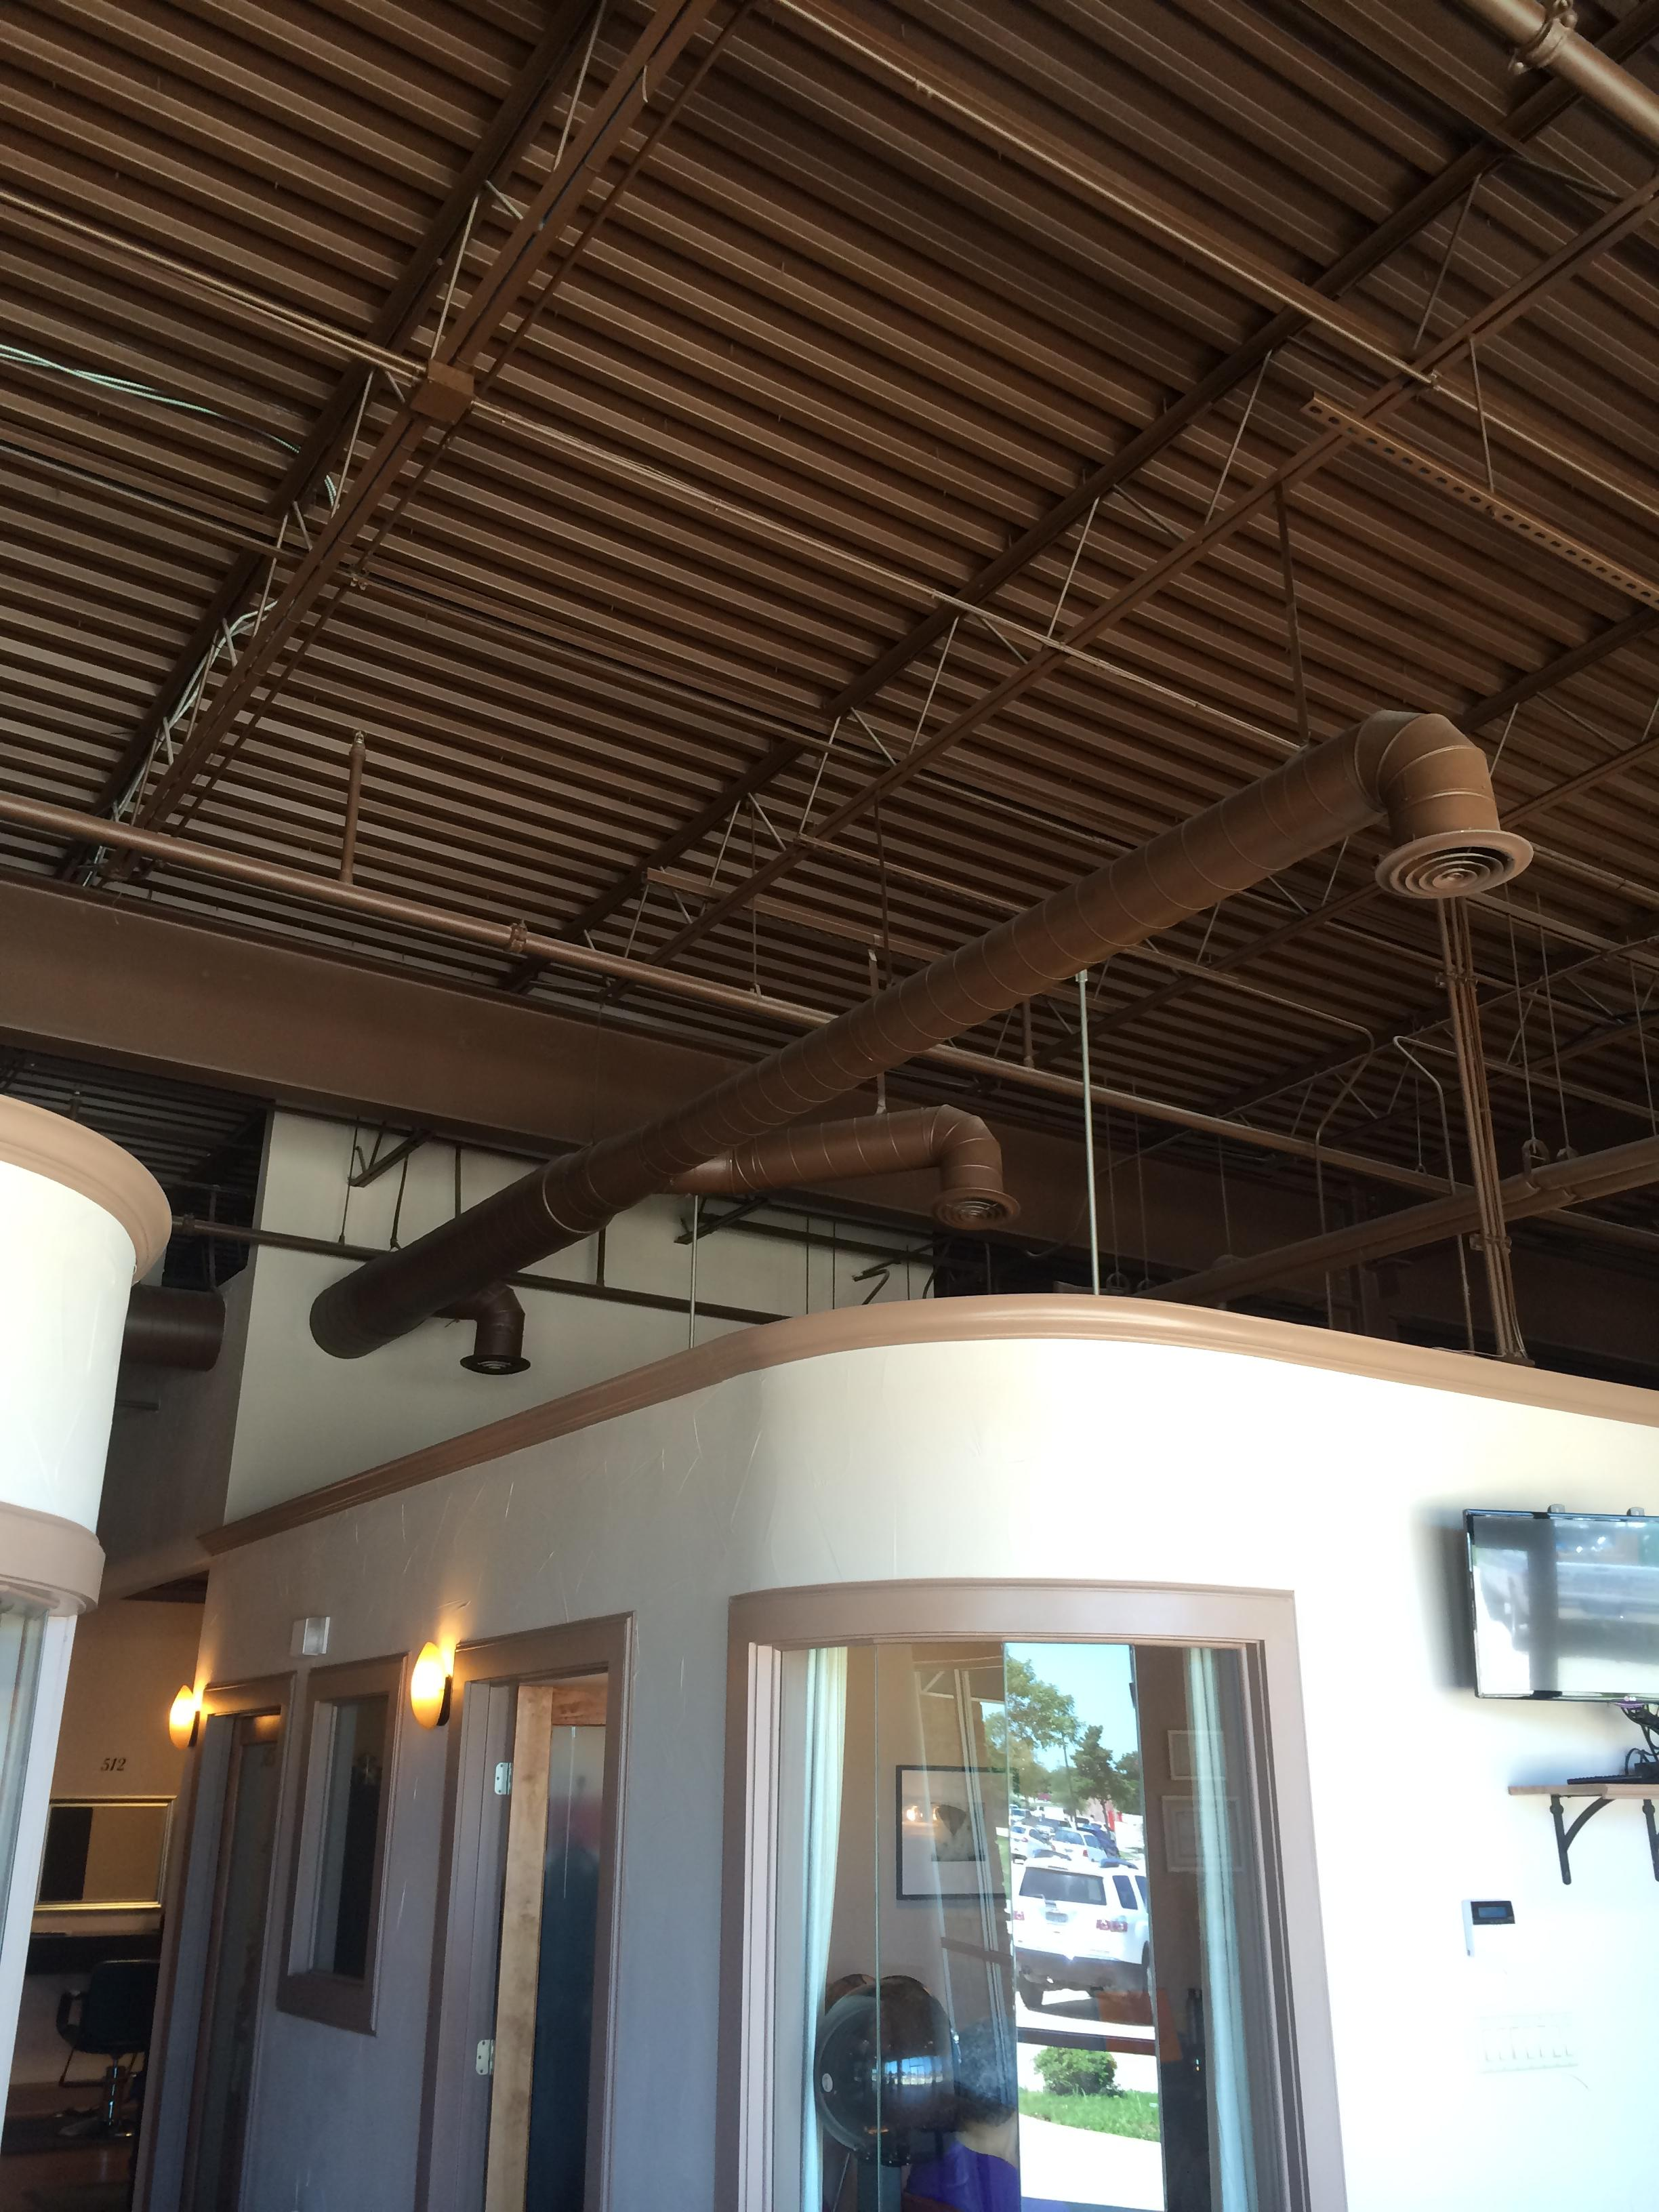 Salon we did complete install from the equipment to new exposed duct work